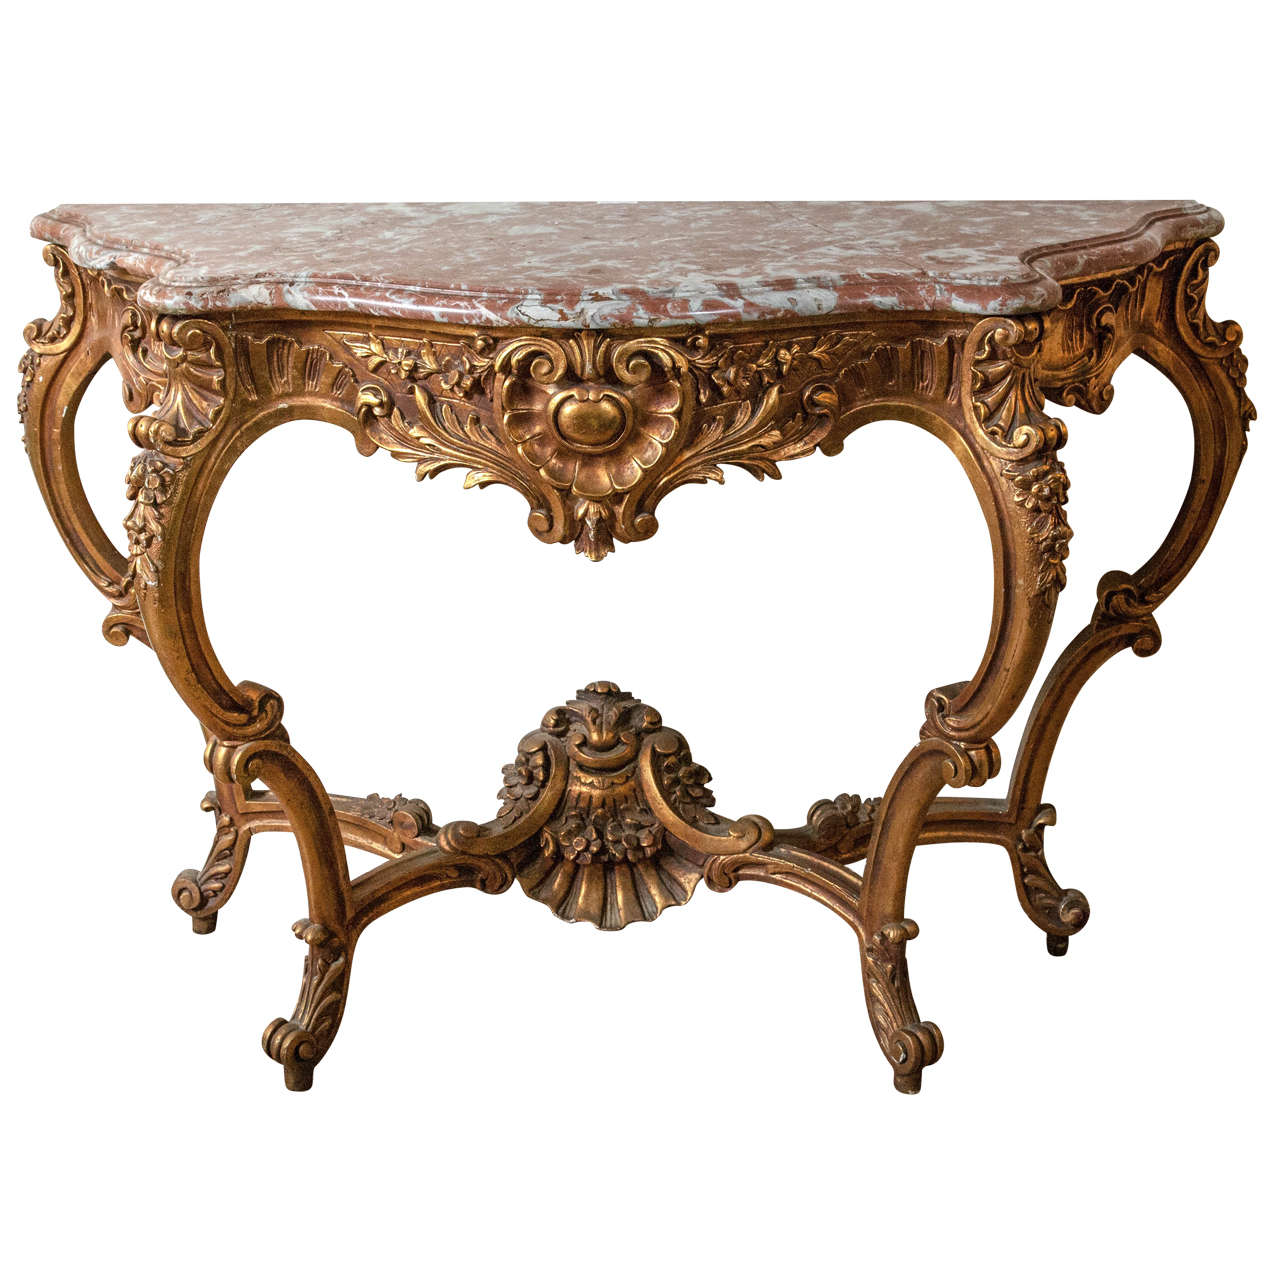 Marble-Top Louis XV Style Console Table by Jansen Exquisite Carved Details 1920s